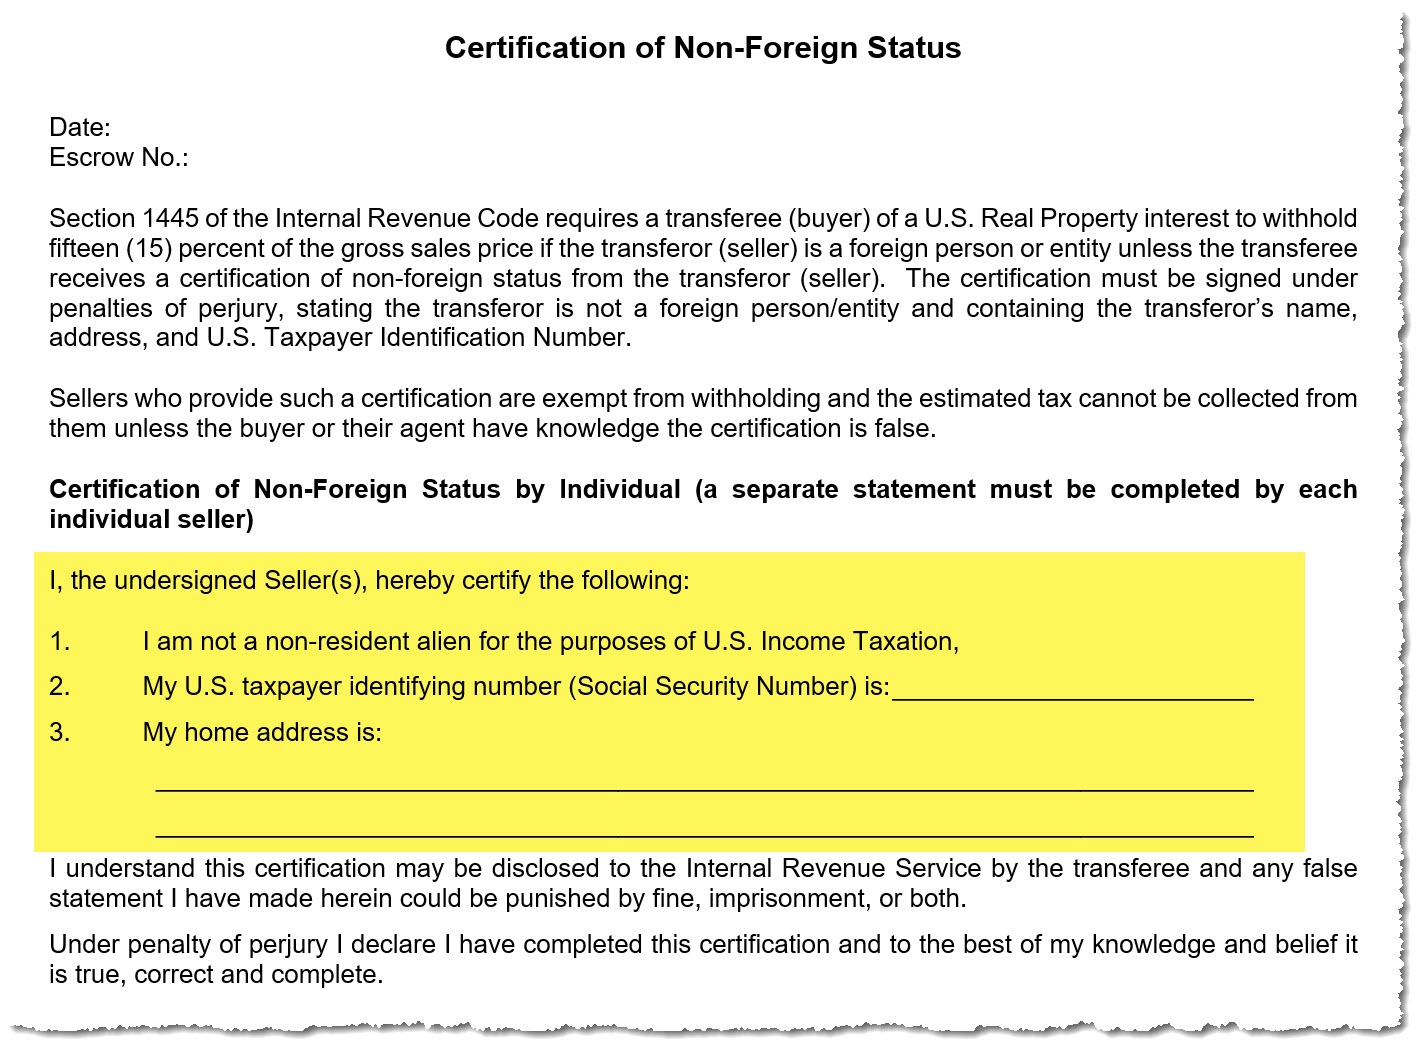 Certification of Non-Foreign Status